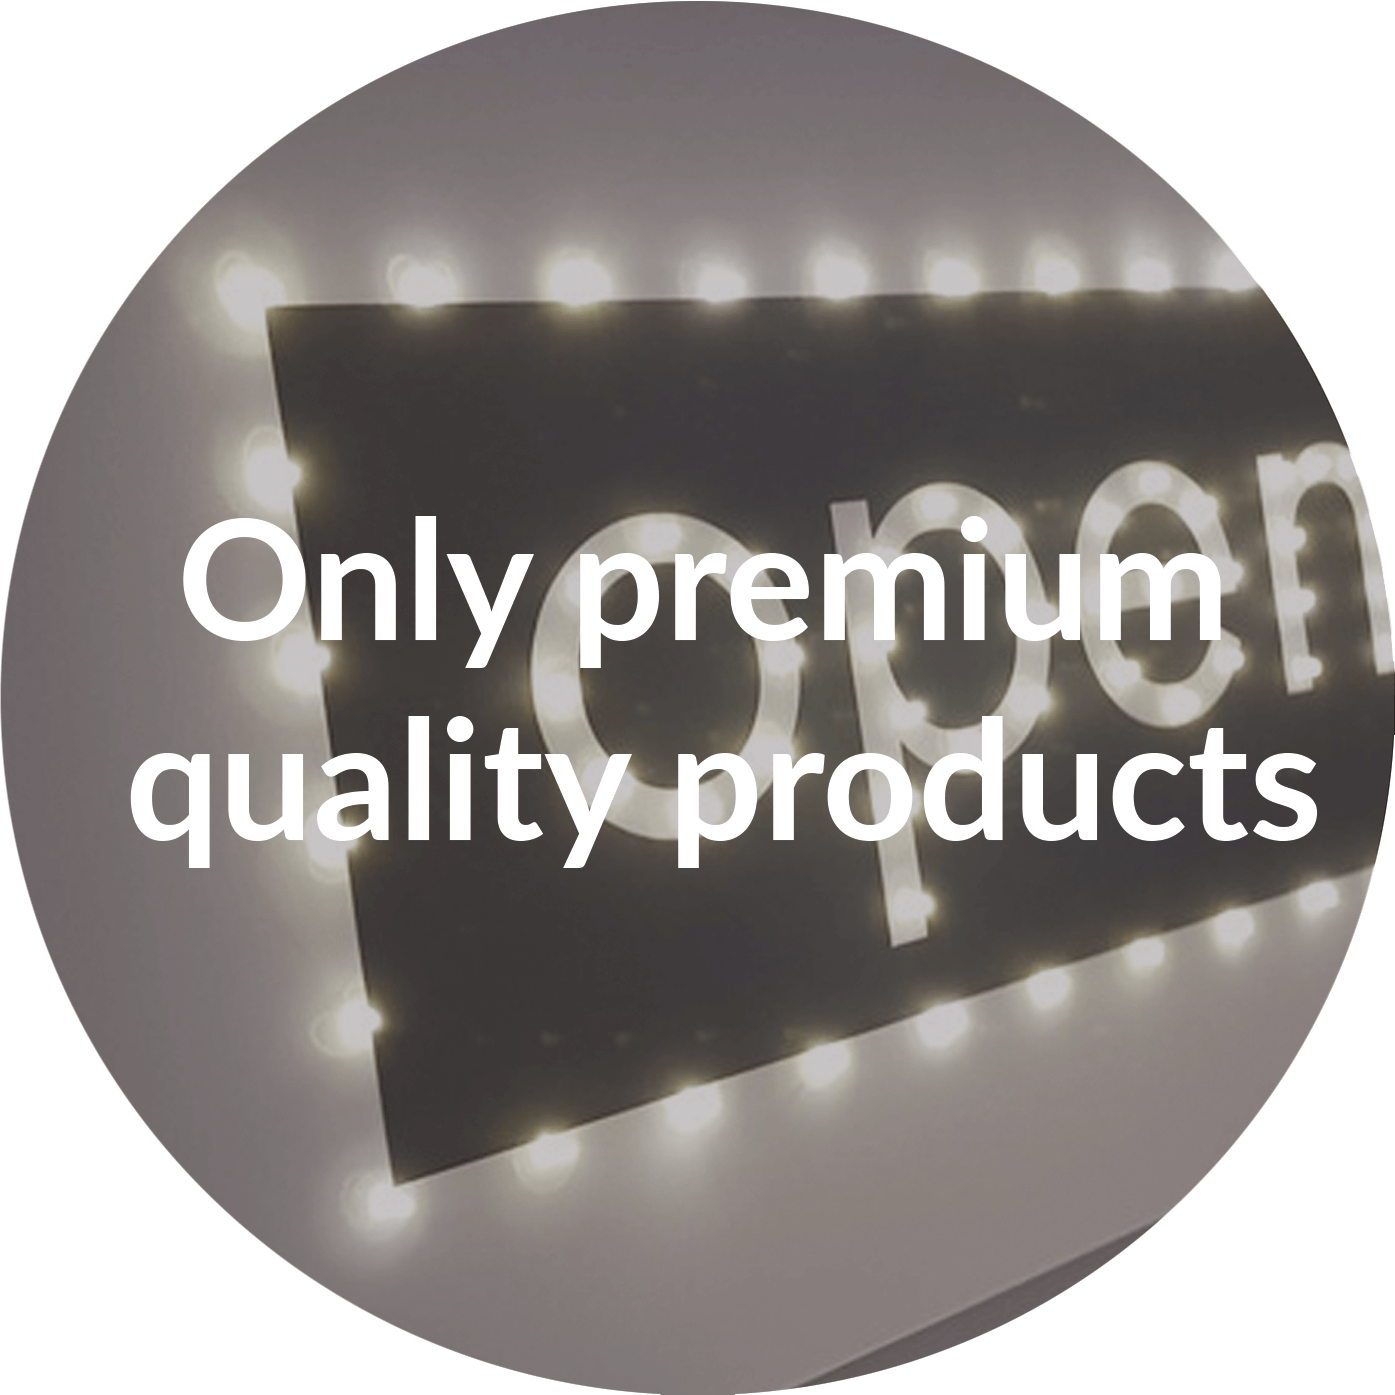 Only premium quality products